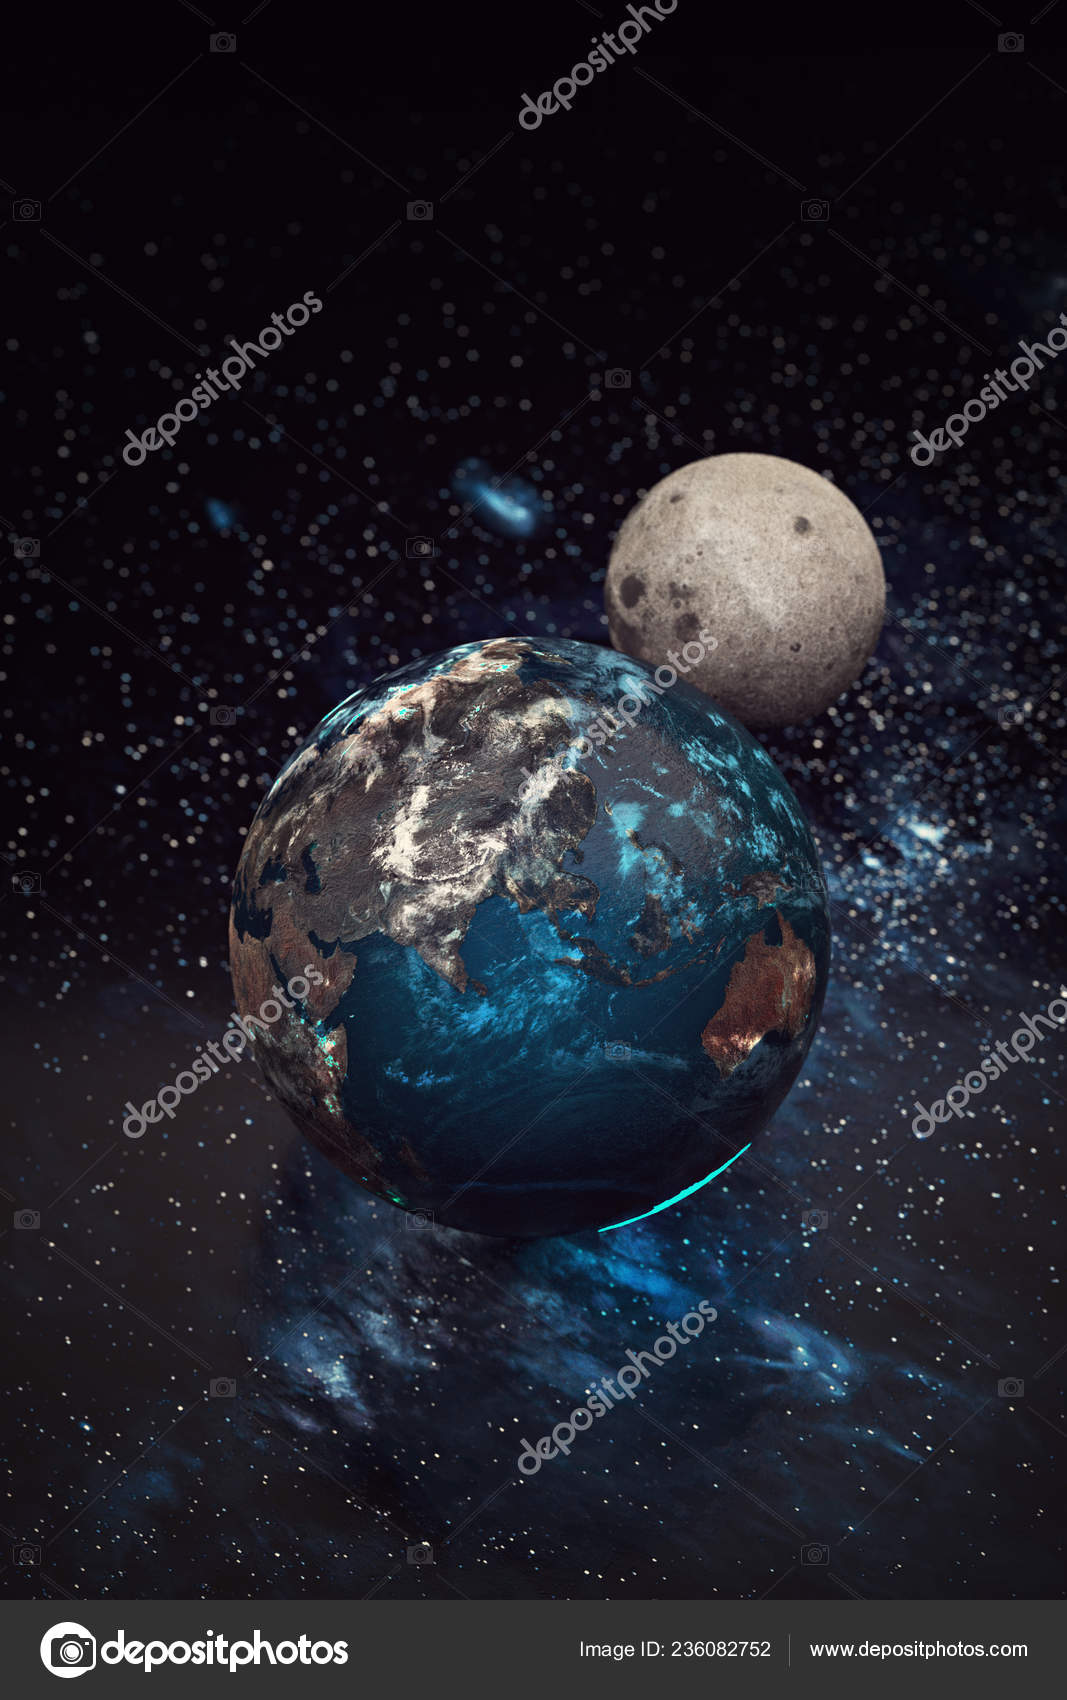 depositphotos 236082752 stock photo planet earth moon and